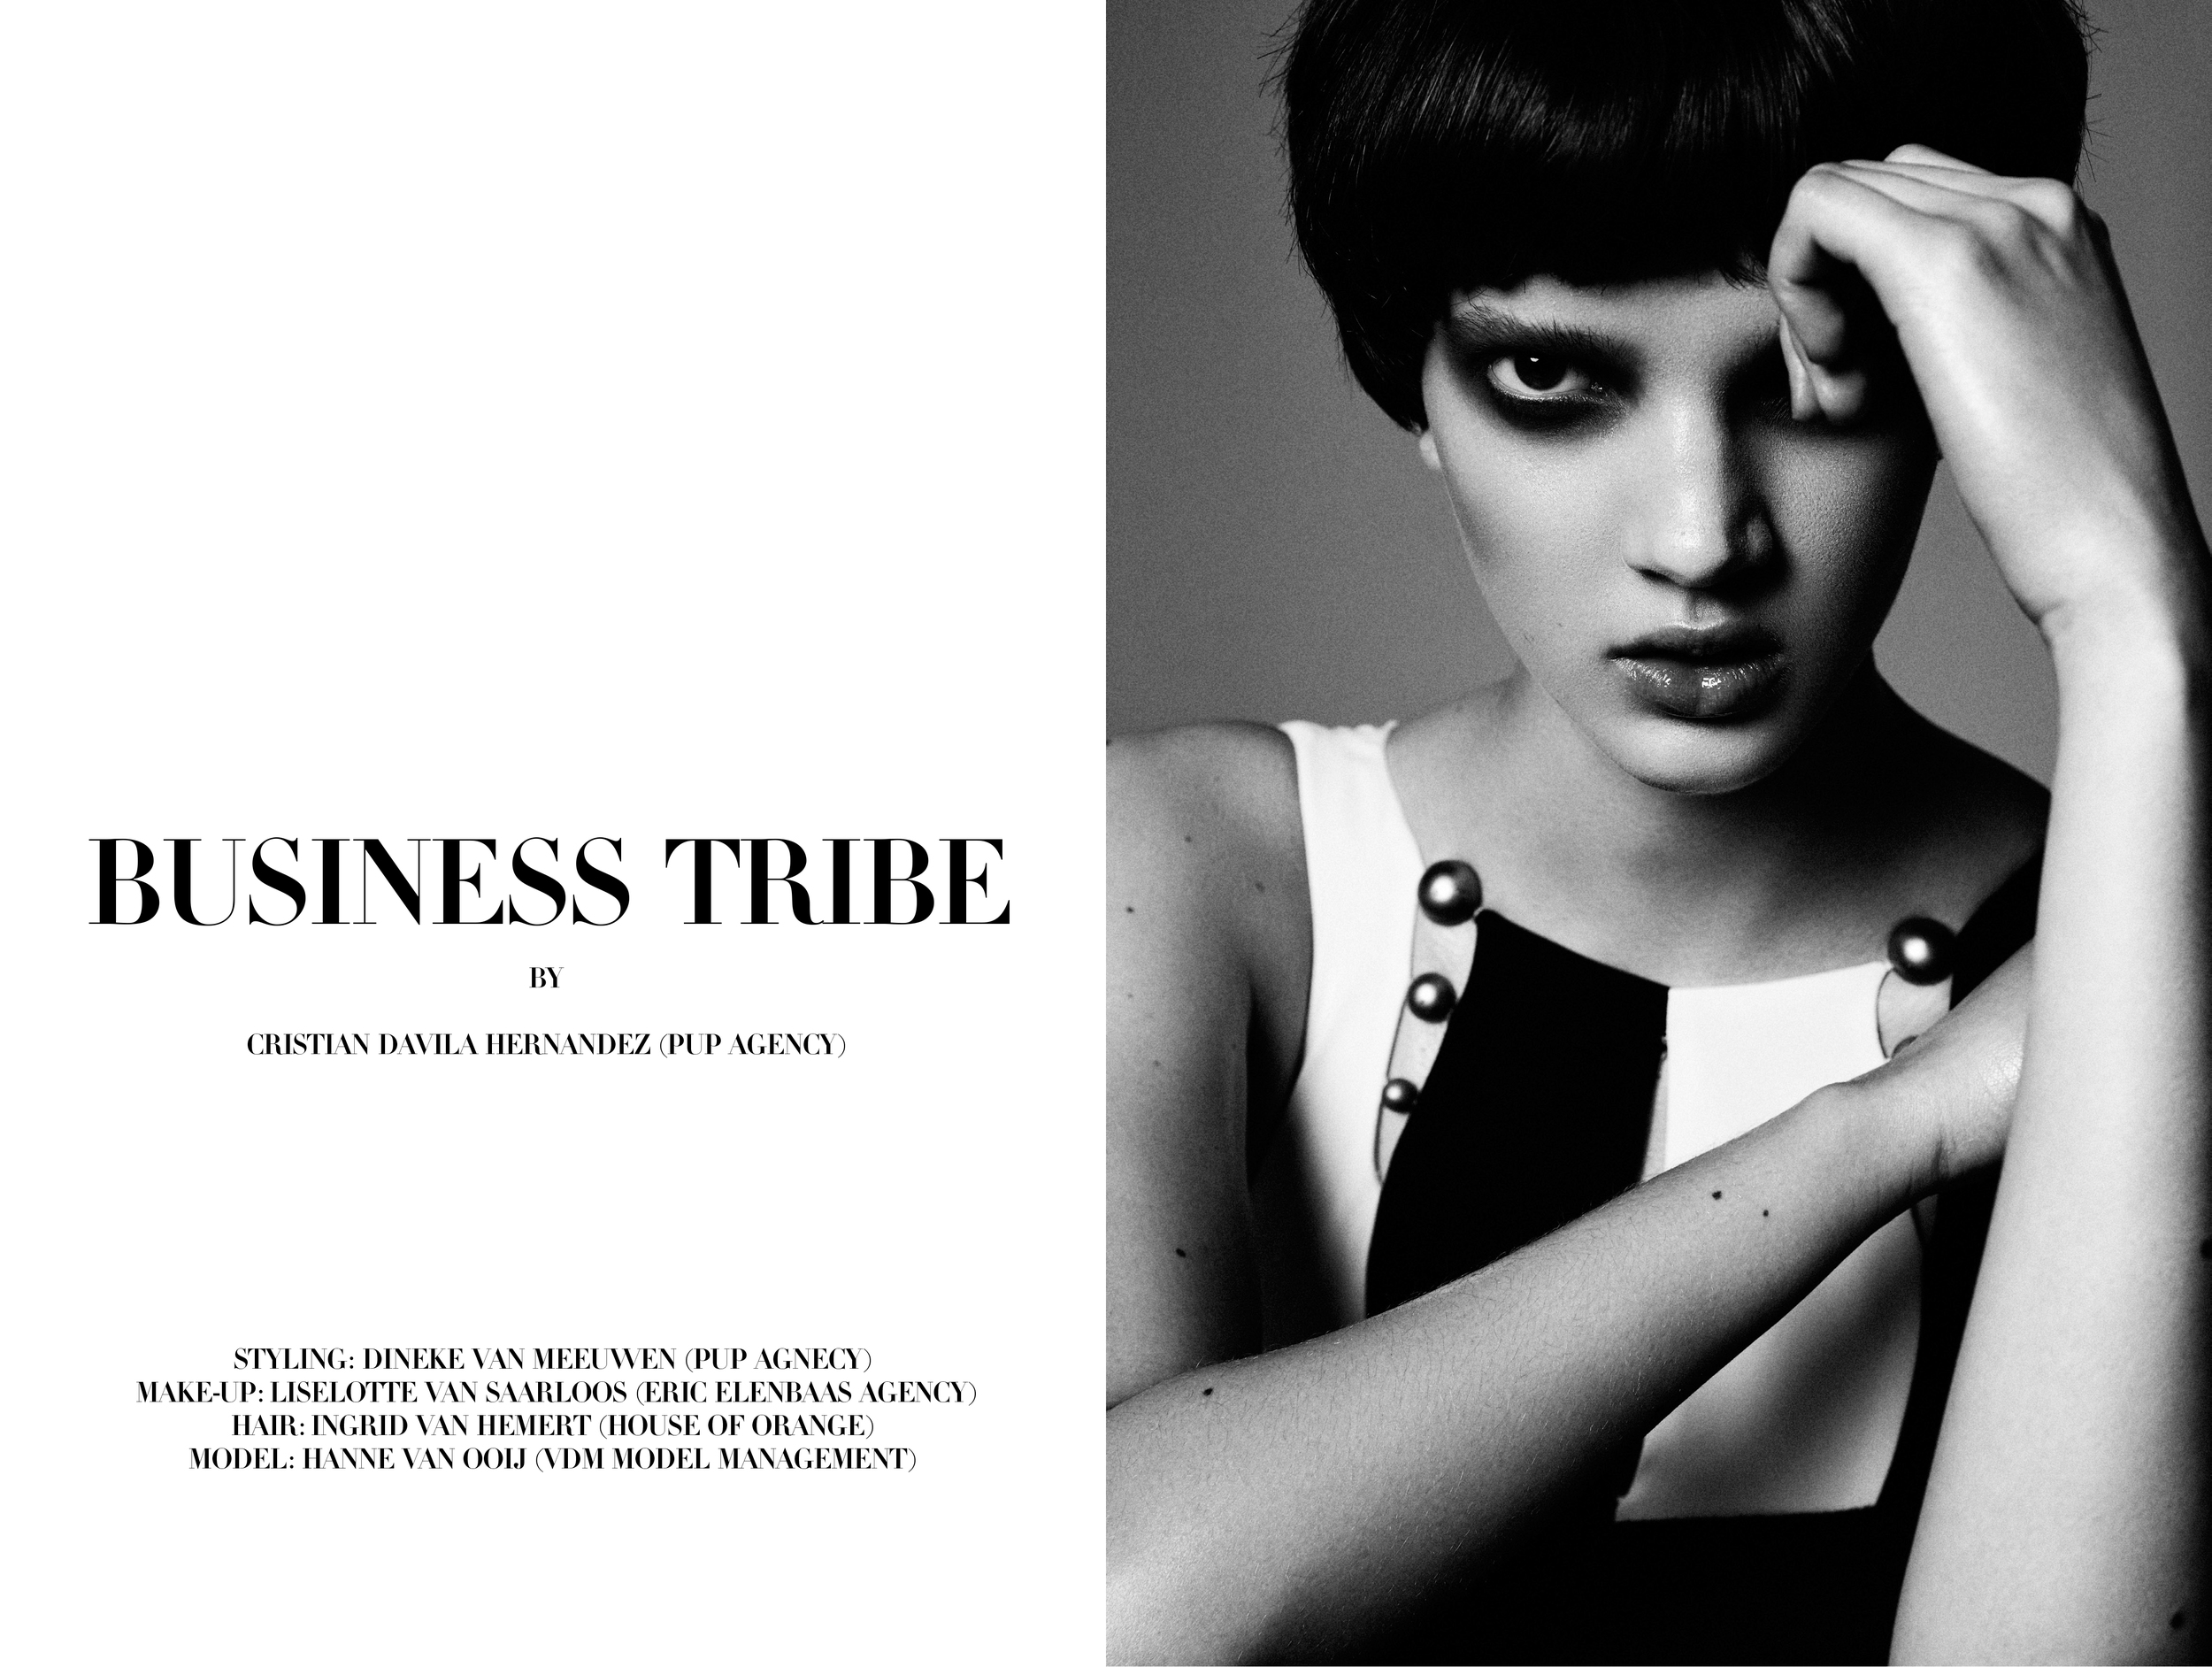 Business Tribe by Cristian Davila Hernandez_01.jpg